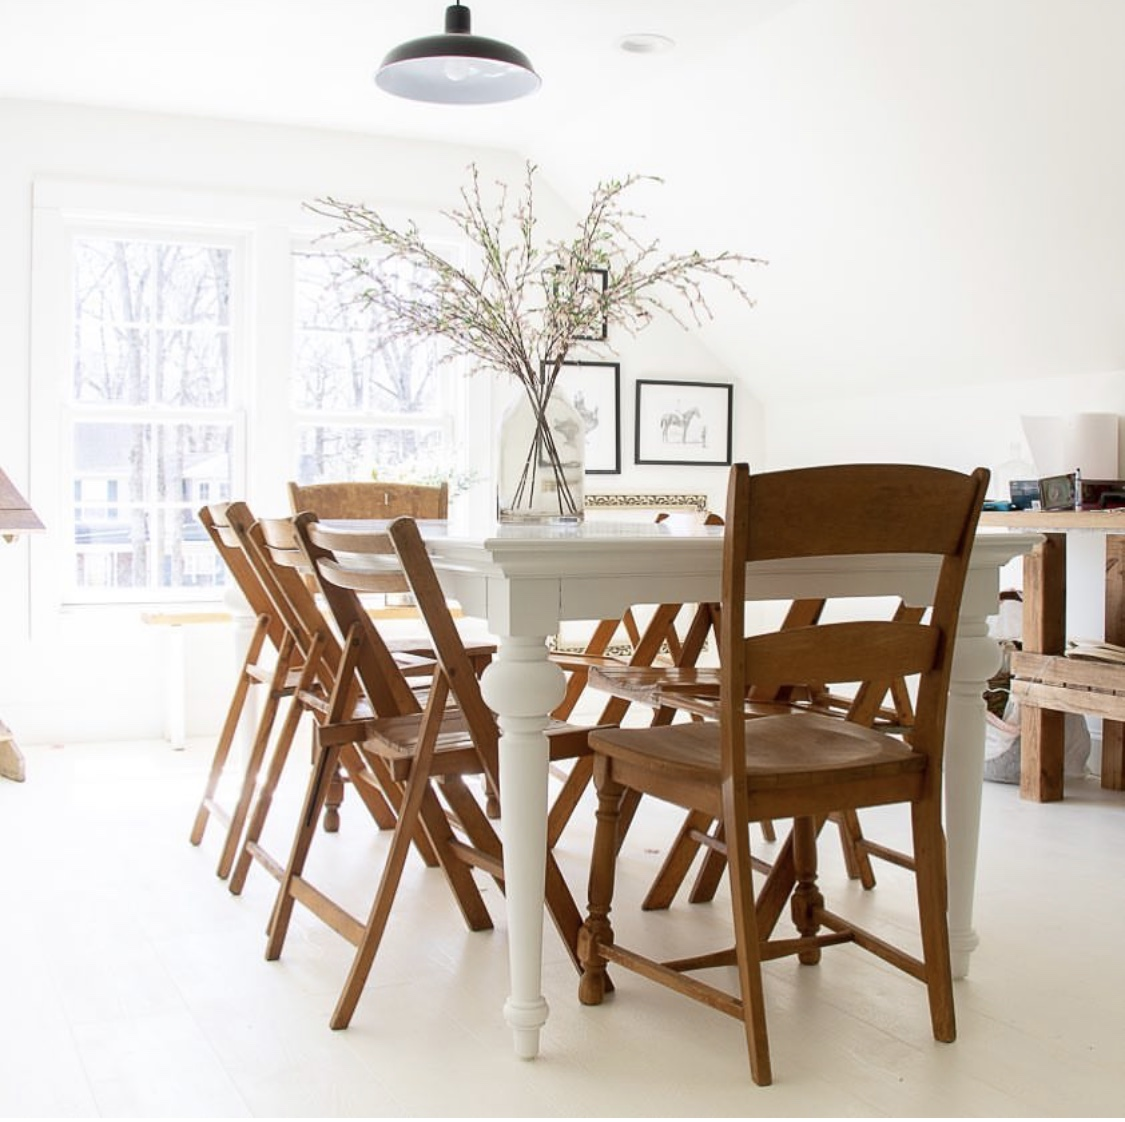 Love this all white home office craft studio with vintage wood folding chairs and industrial light #office #homeoffice #studio #craftroom #crafting #vintage #vintagedecor #neutraldecor #farmhouse #farmhousedecor